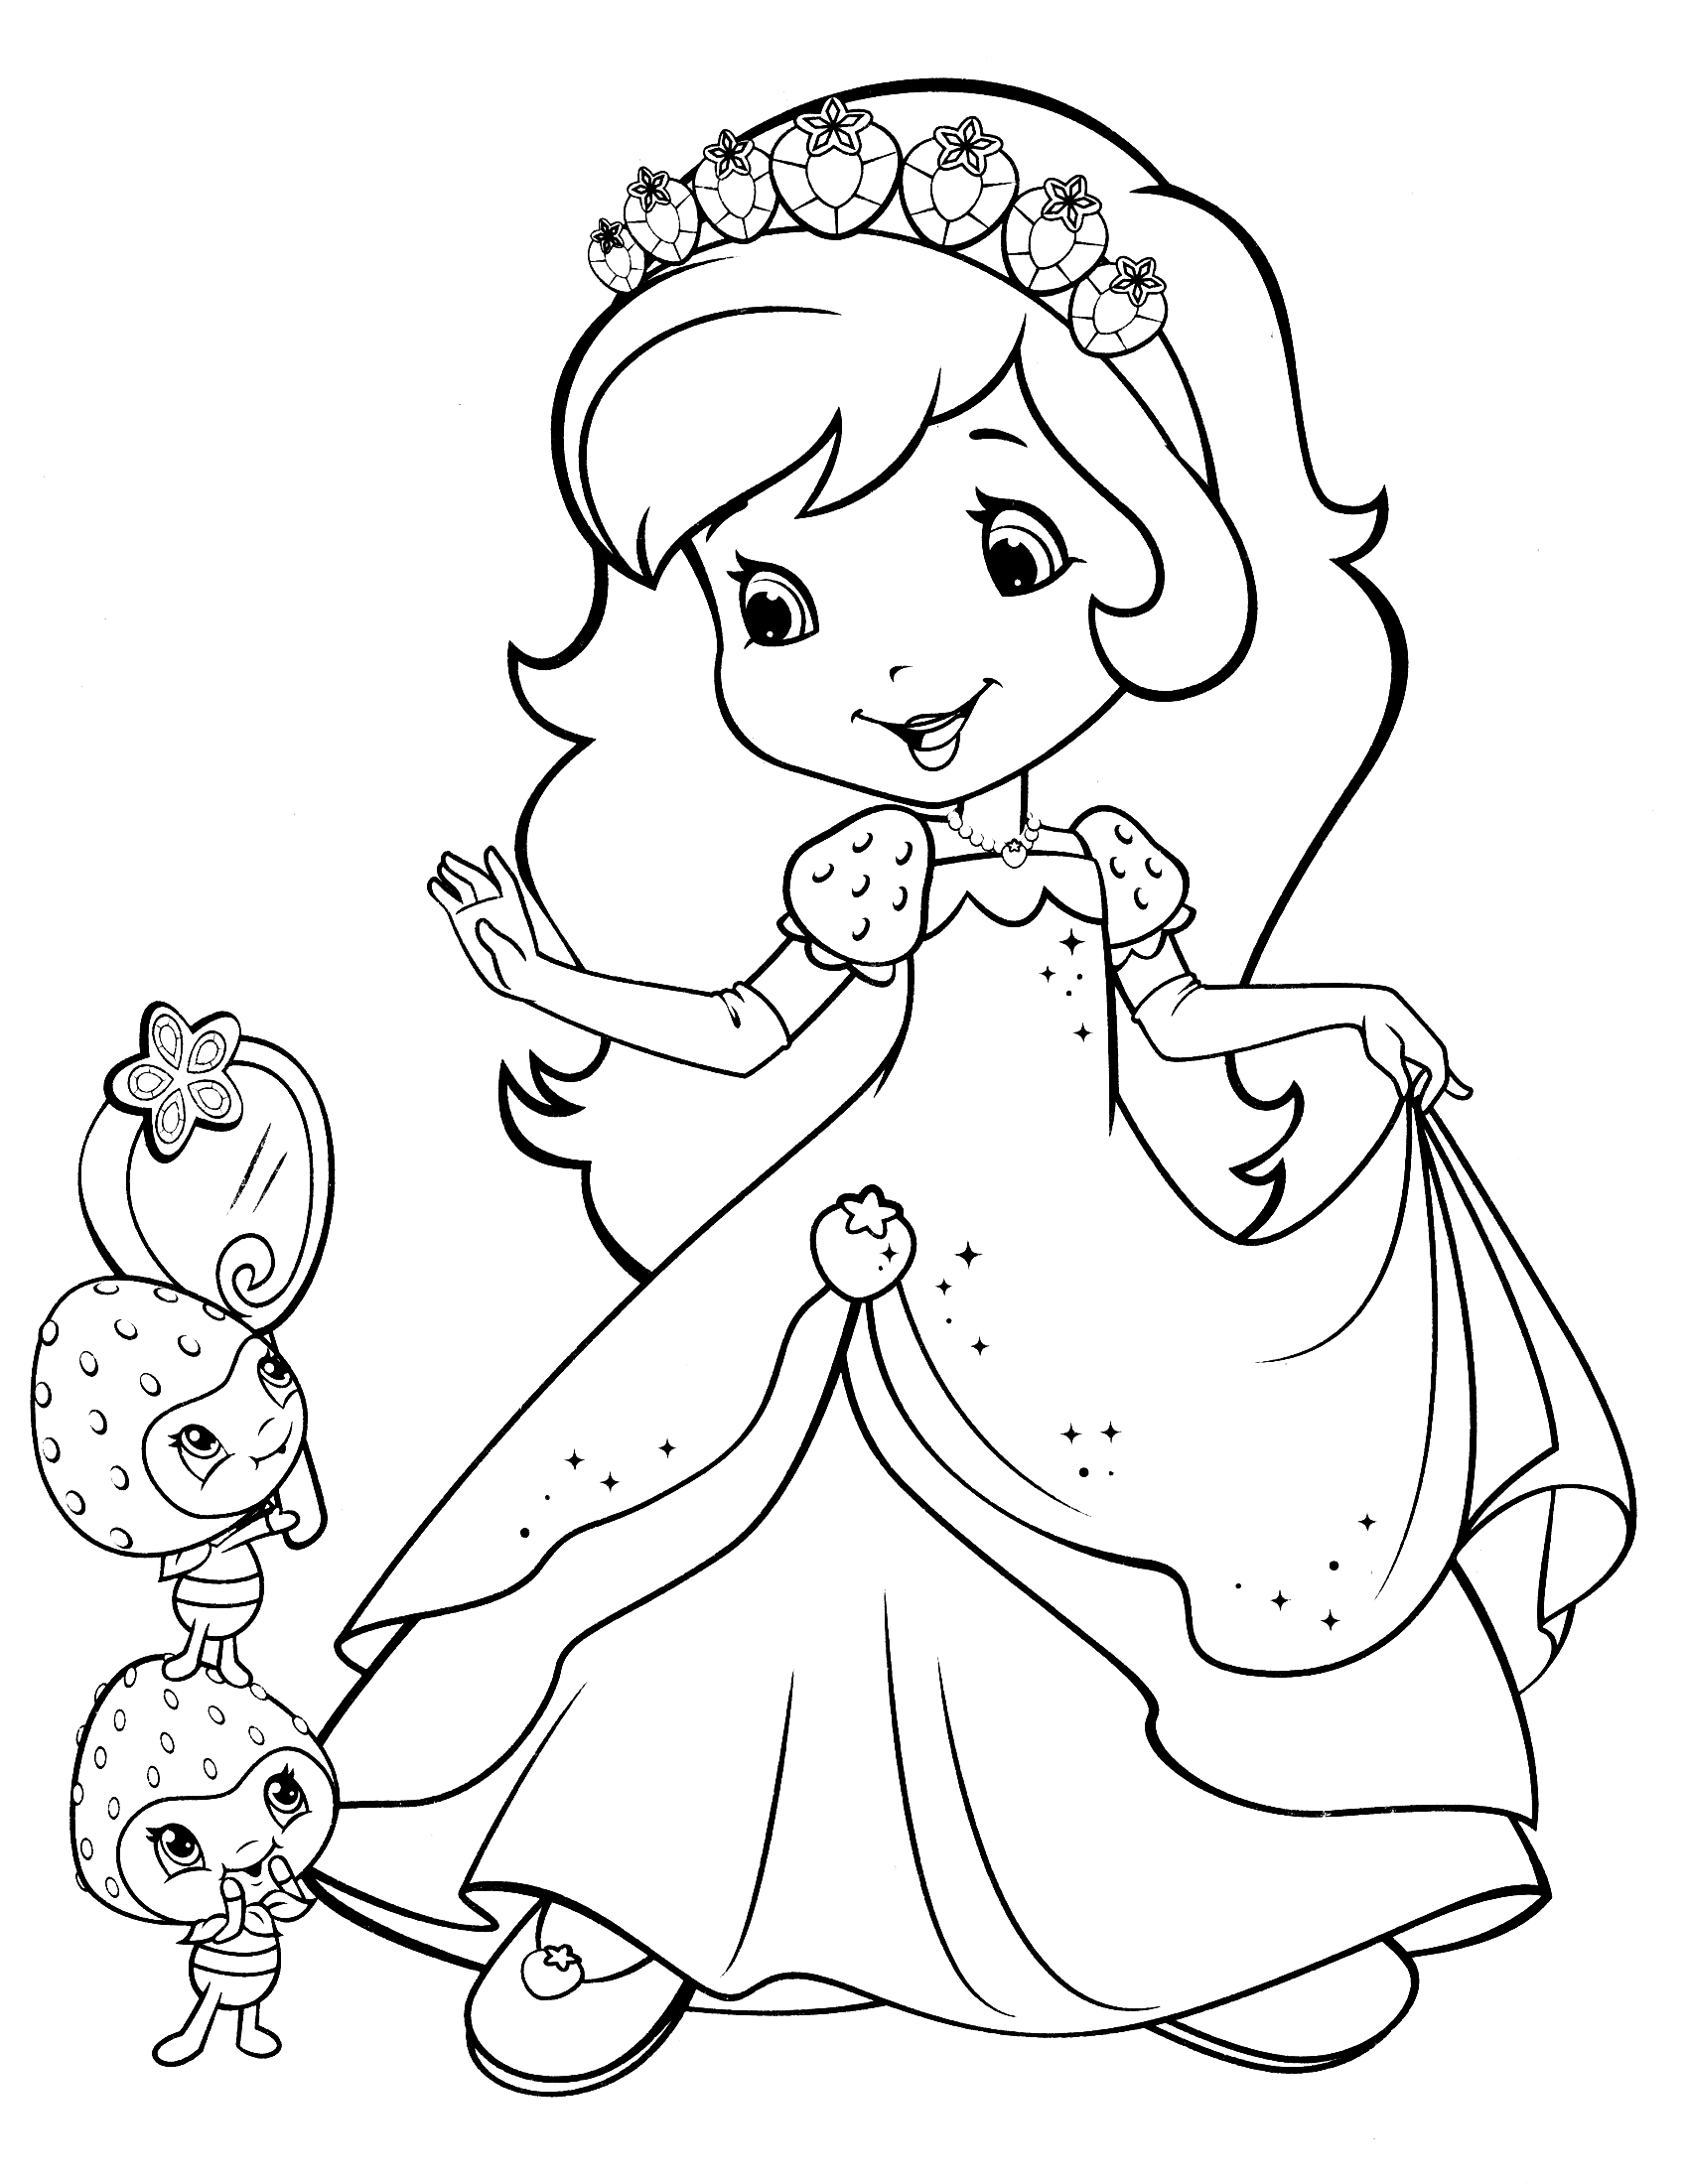 strawberry shortcake and friends coloring pages to print - Buscar ... | 2200x1700